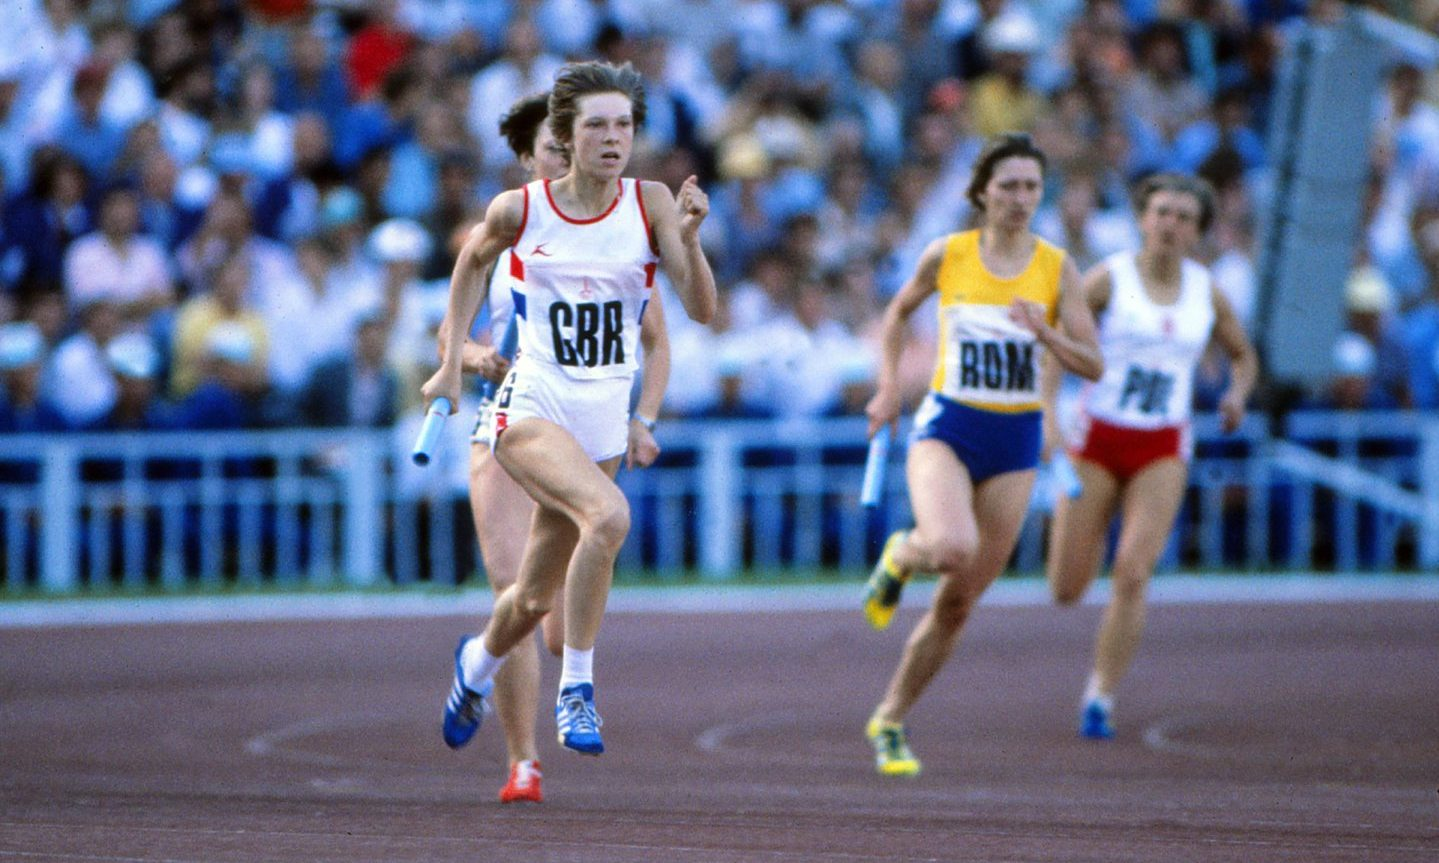 Linsey competing in the 1980 Olympic Games in Moscow.